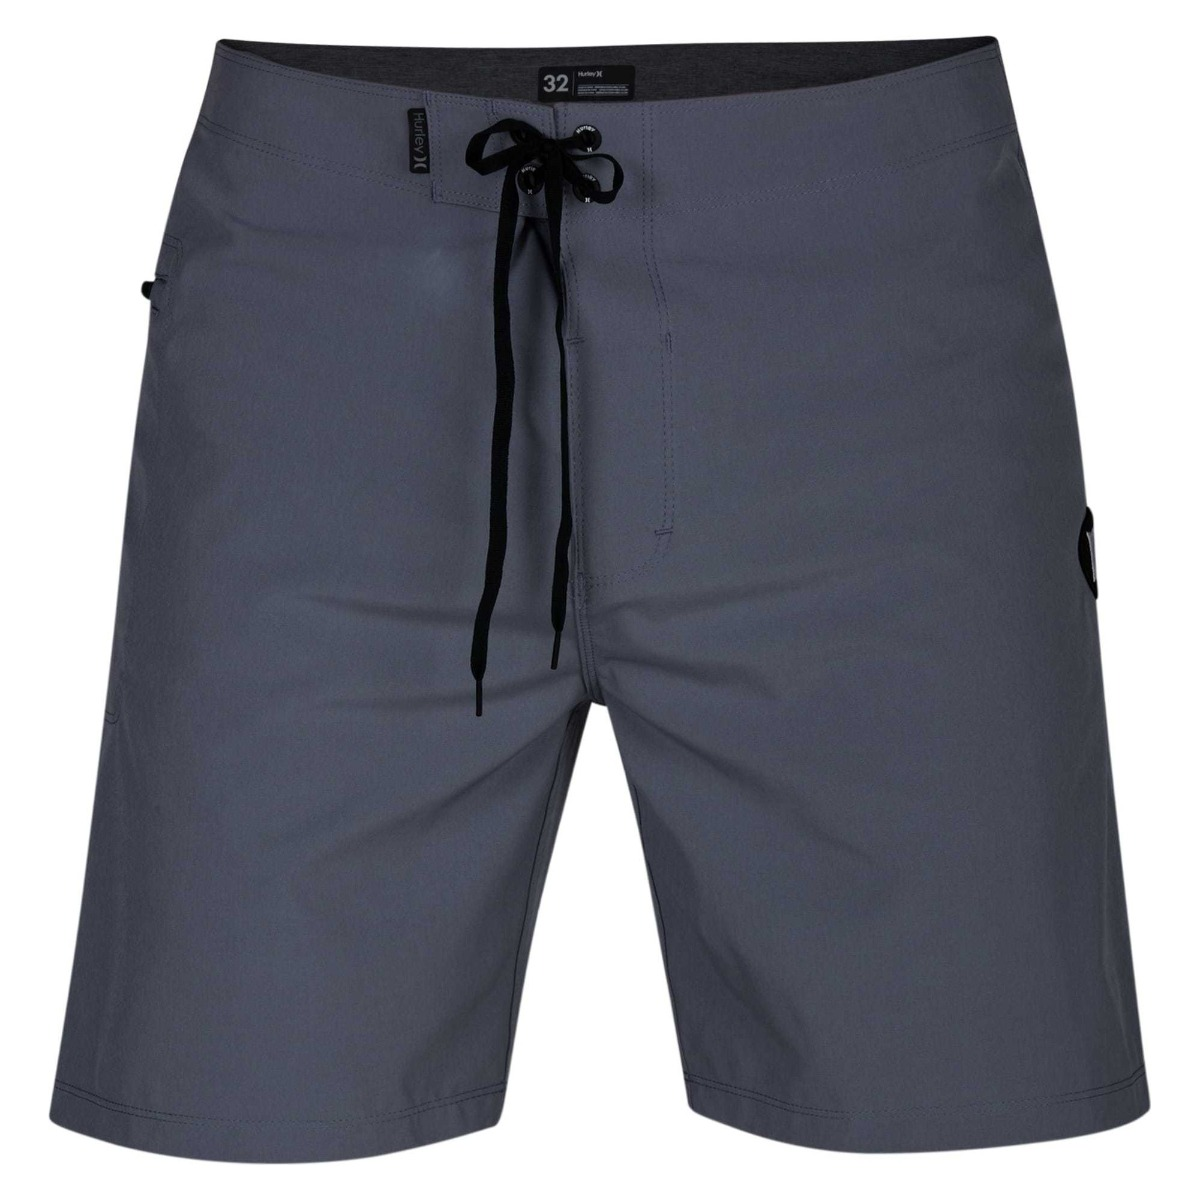 2888b4231a Details about Hurley NEW Men's Phantom One & Only 18